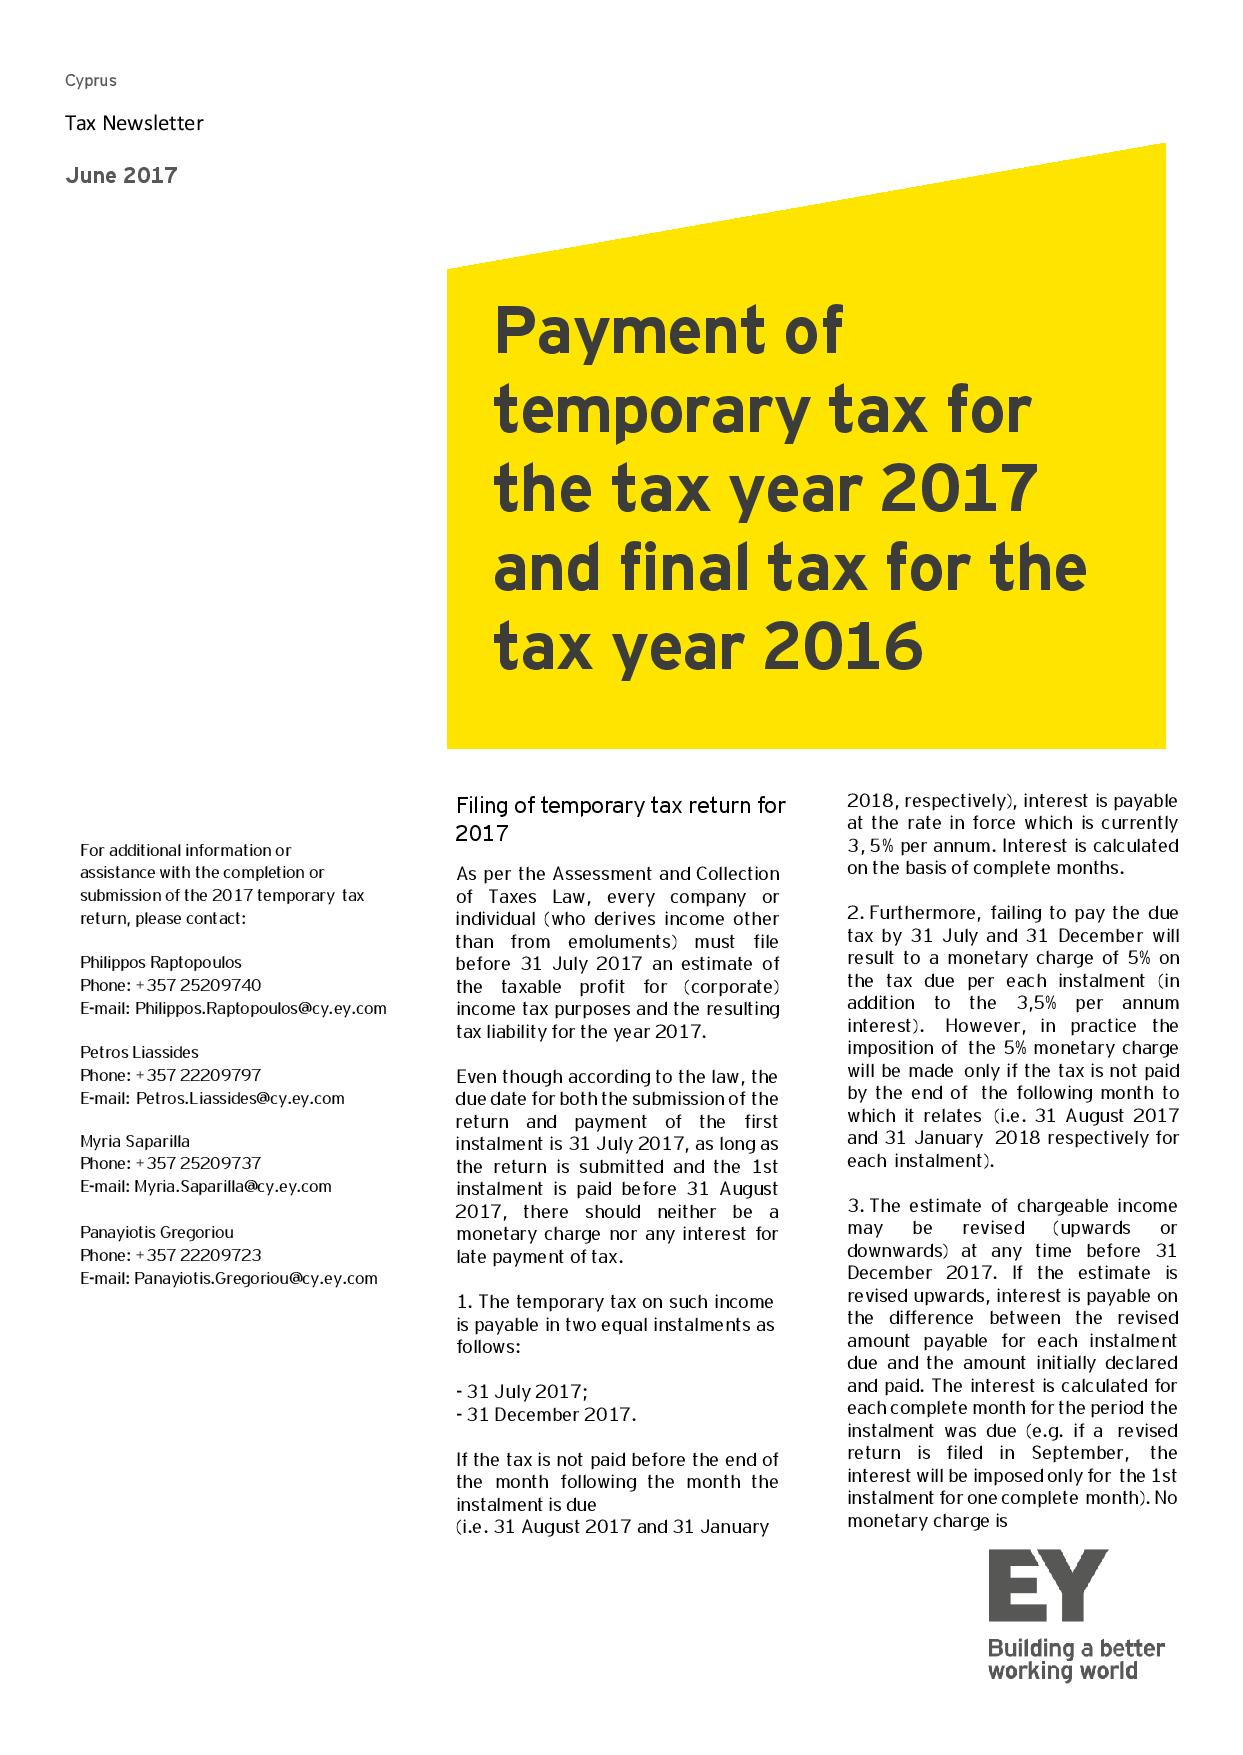 EY Tax Newsletter June 2017